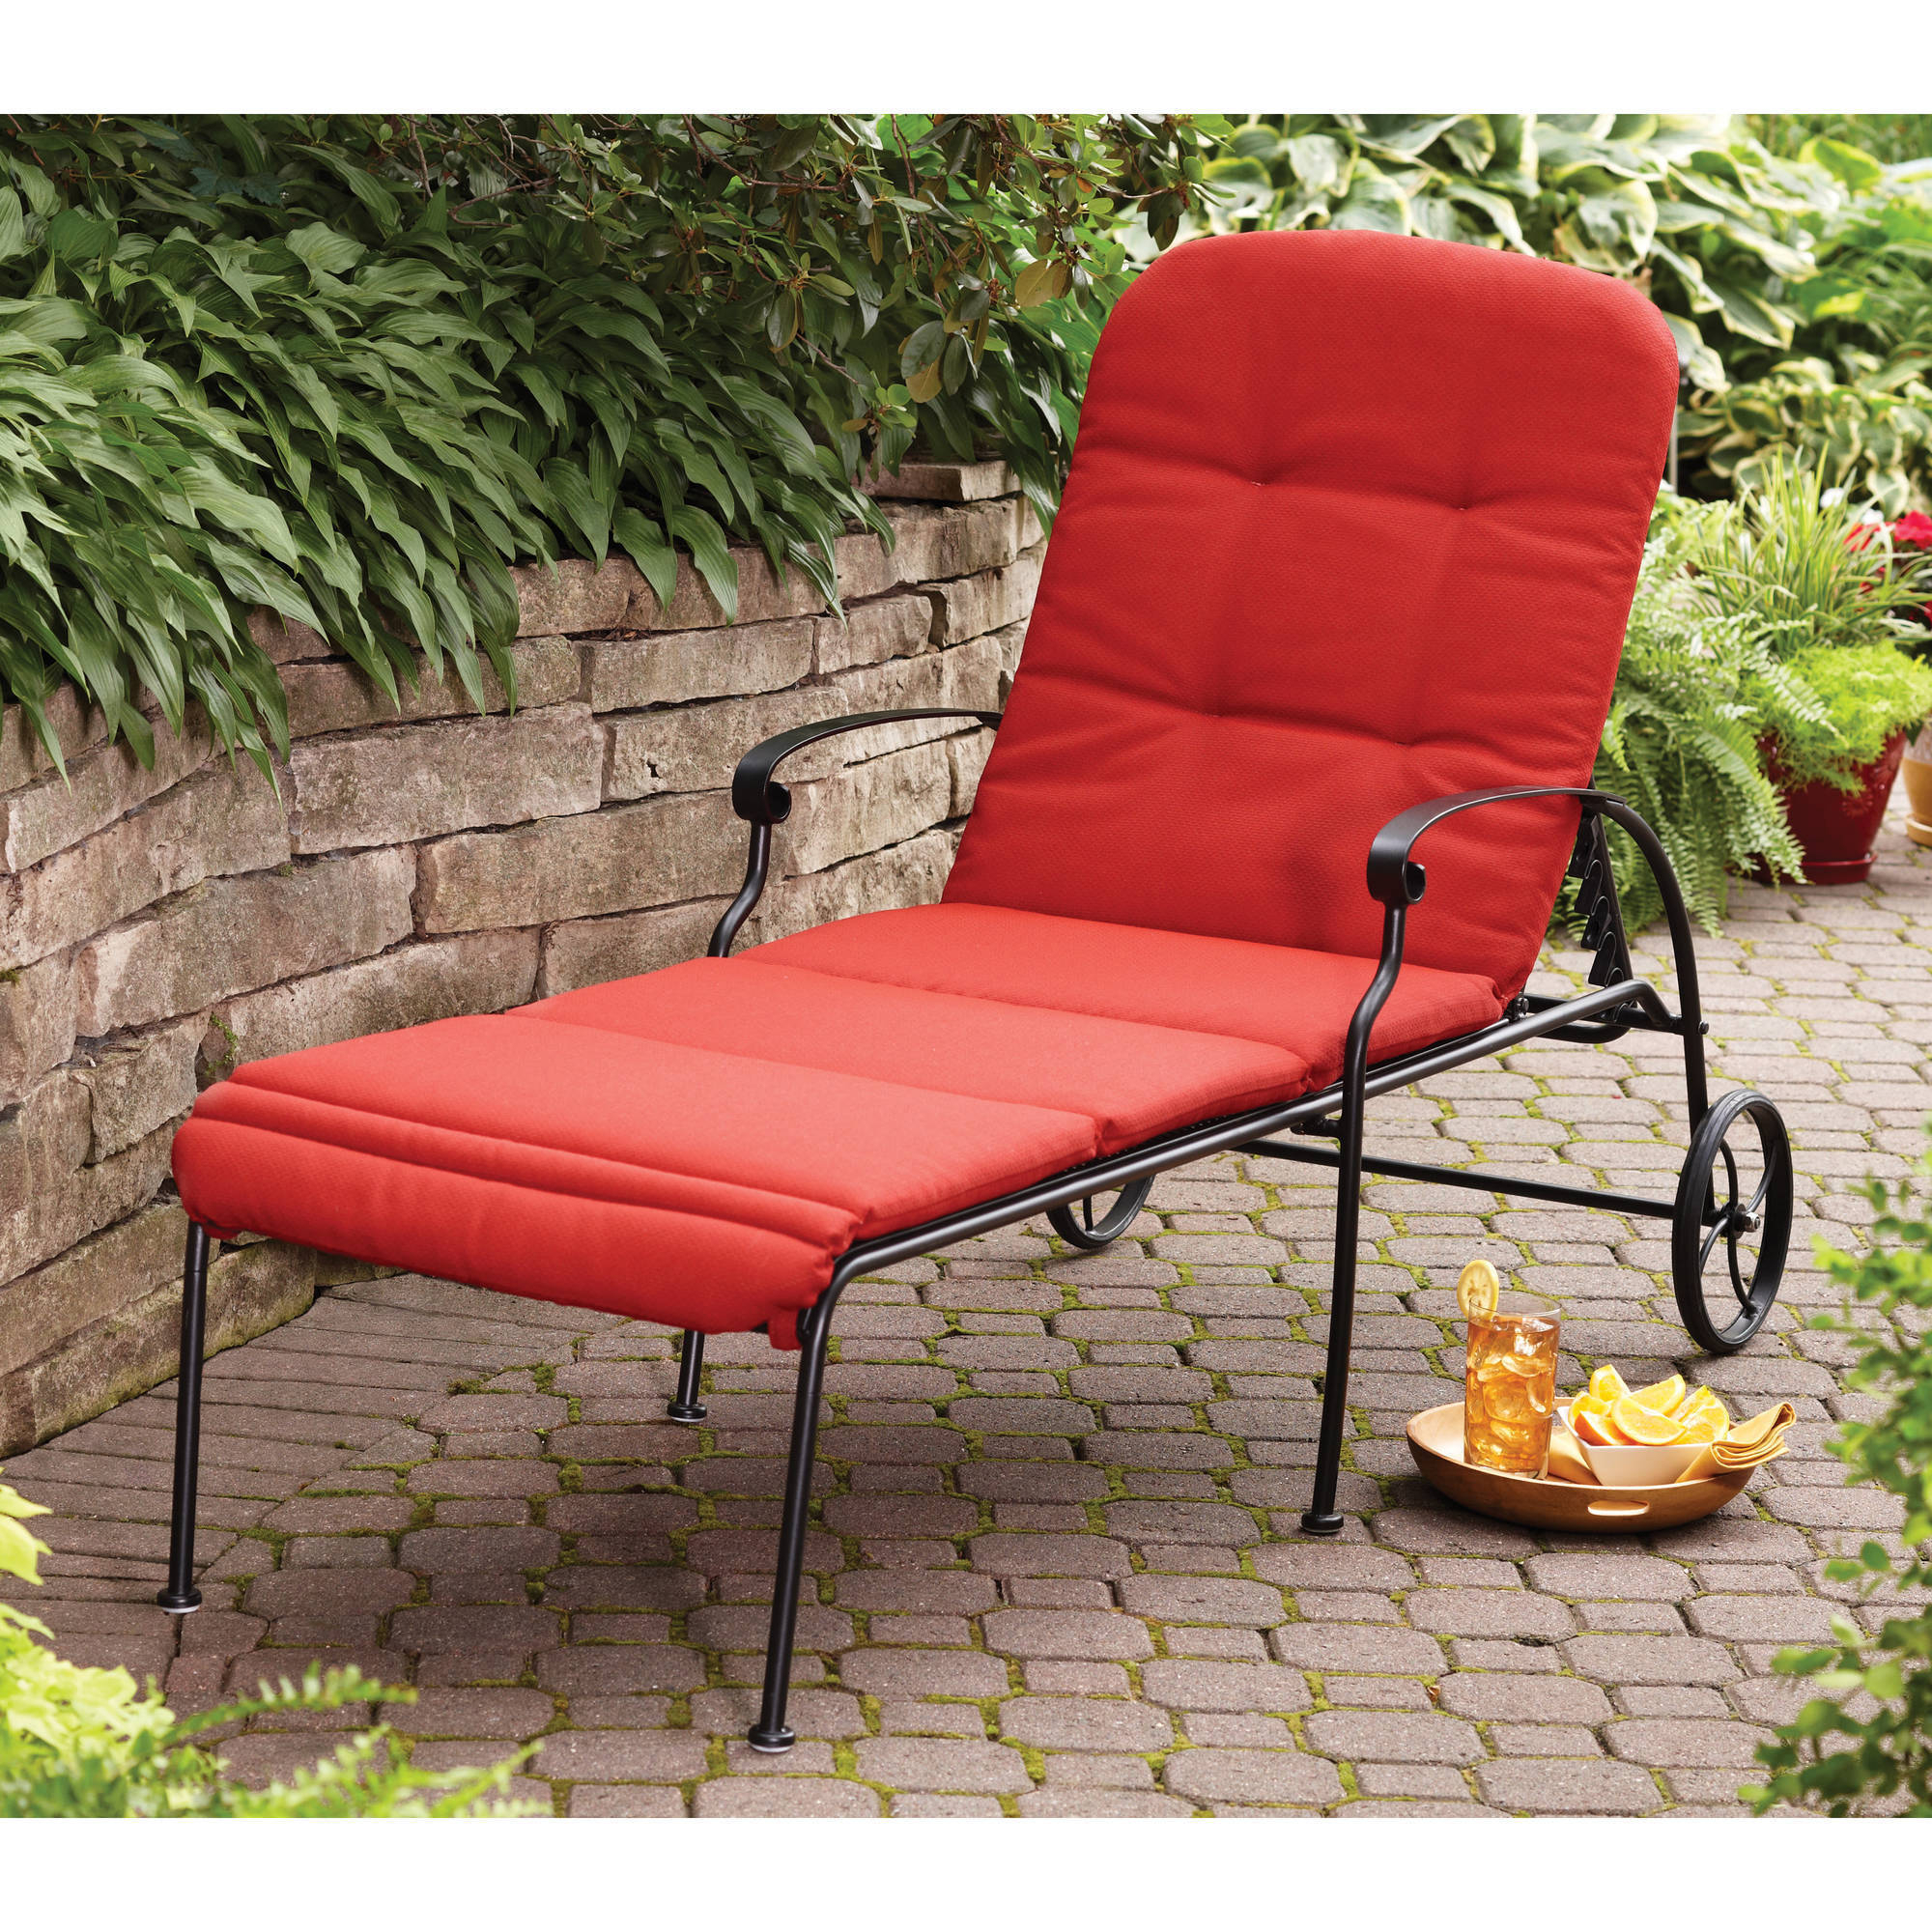 Latest Better Homes & Gardens Clayton Court Chaise Lounge With Wheels, Red Inside Wicker Chaise Back Adjustable Patio Lounge Chairs With Wheels (View 25 of 25)